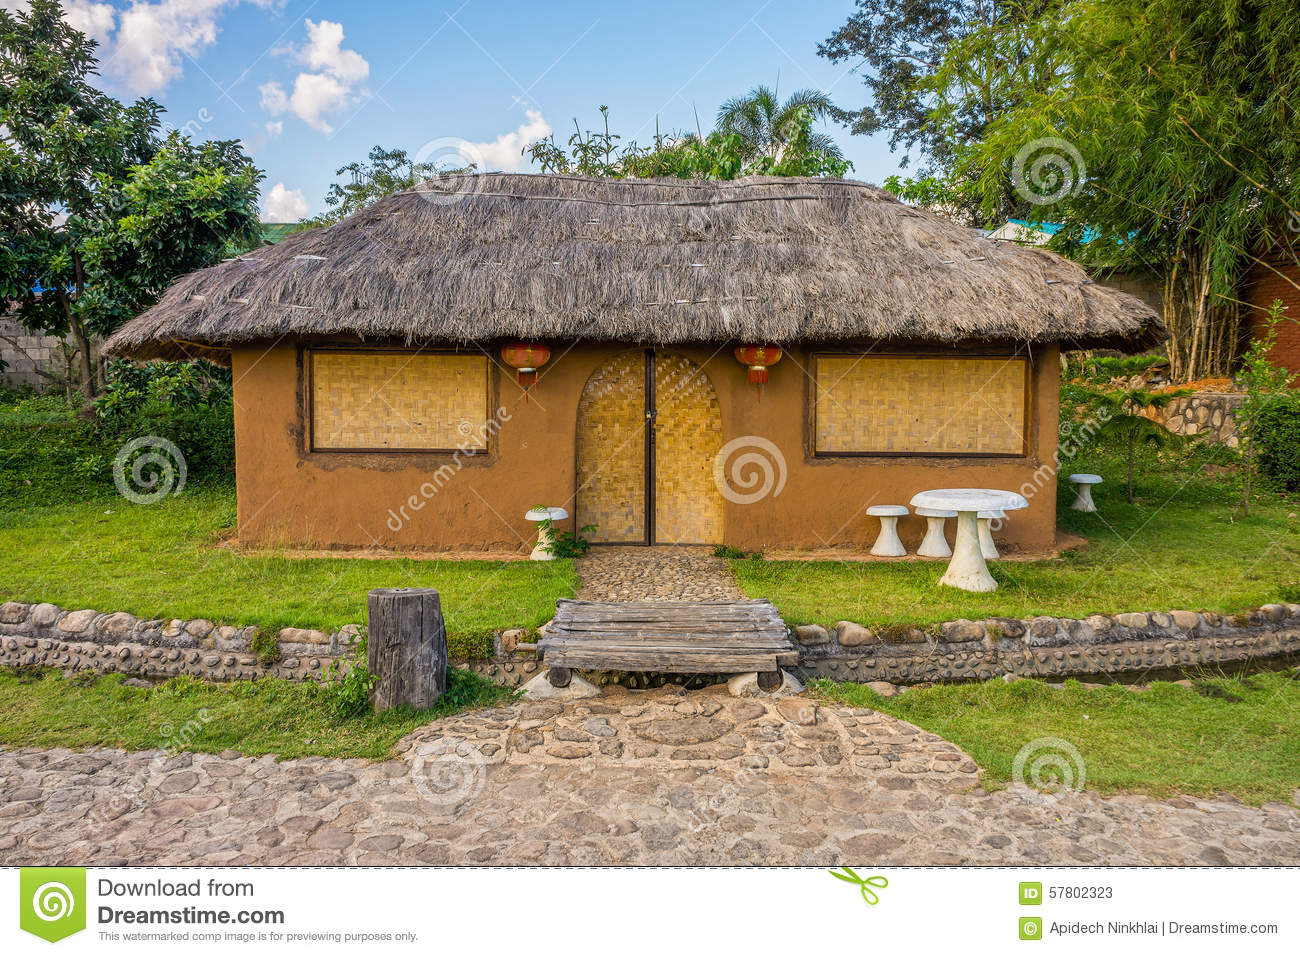 Water Building Material : Cob house with garden in northern thailand stock photo